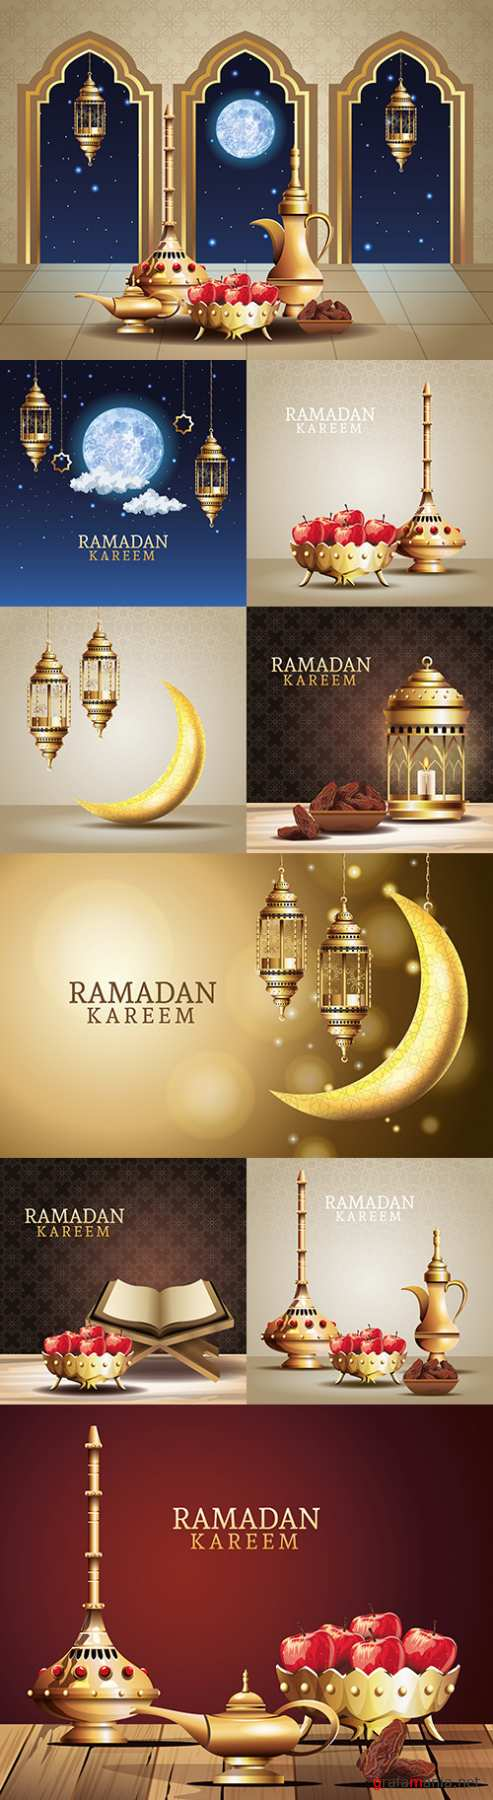 Holiday Ramadan Kareem with gold lights illustration